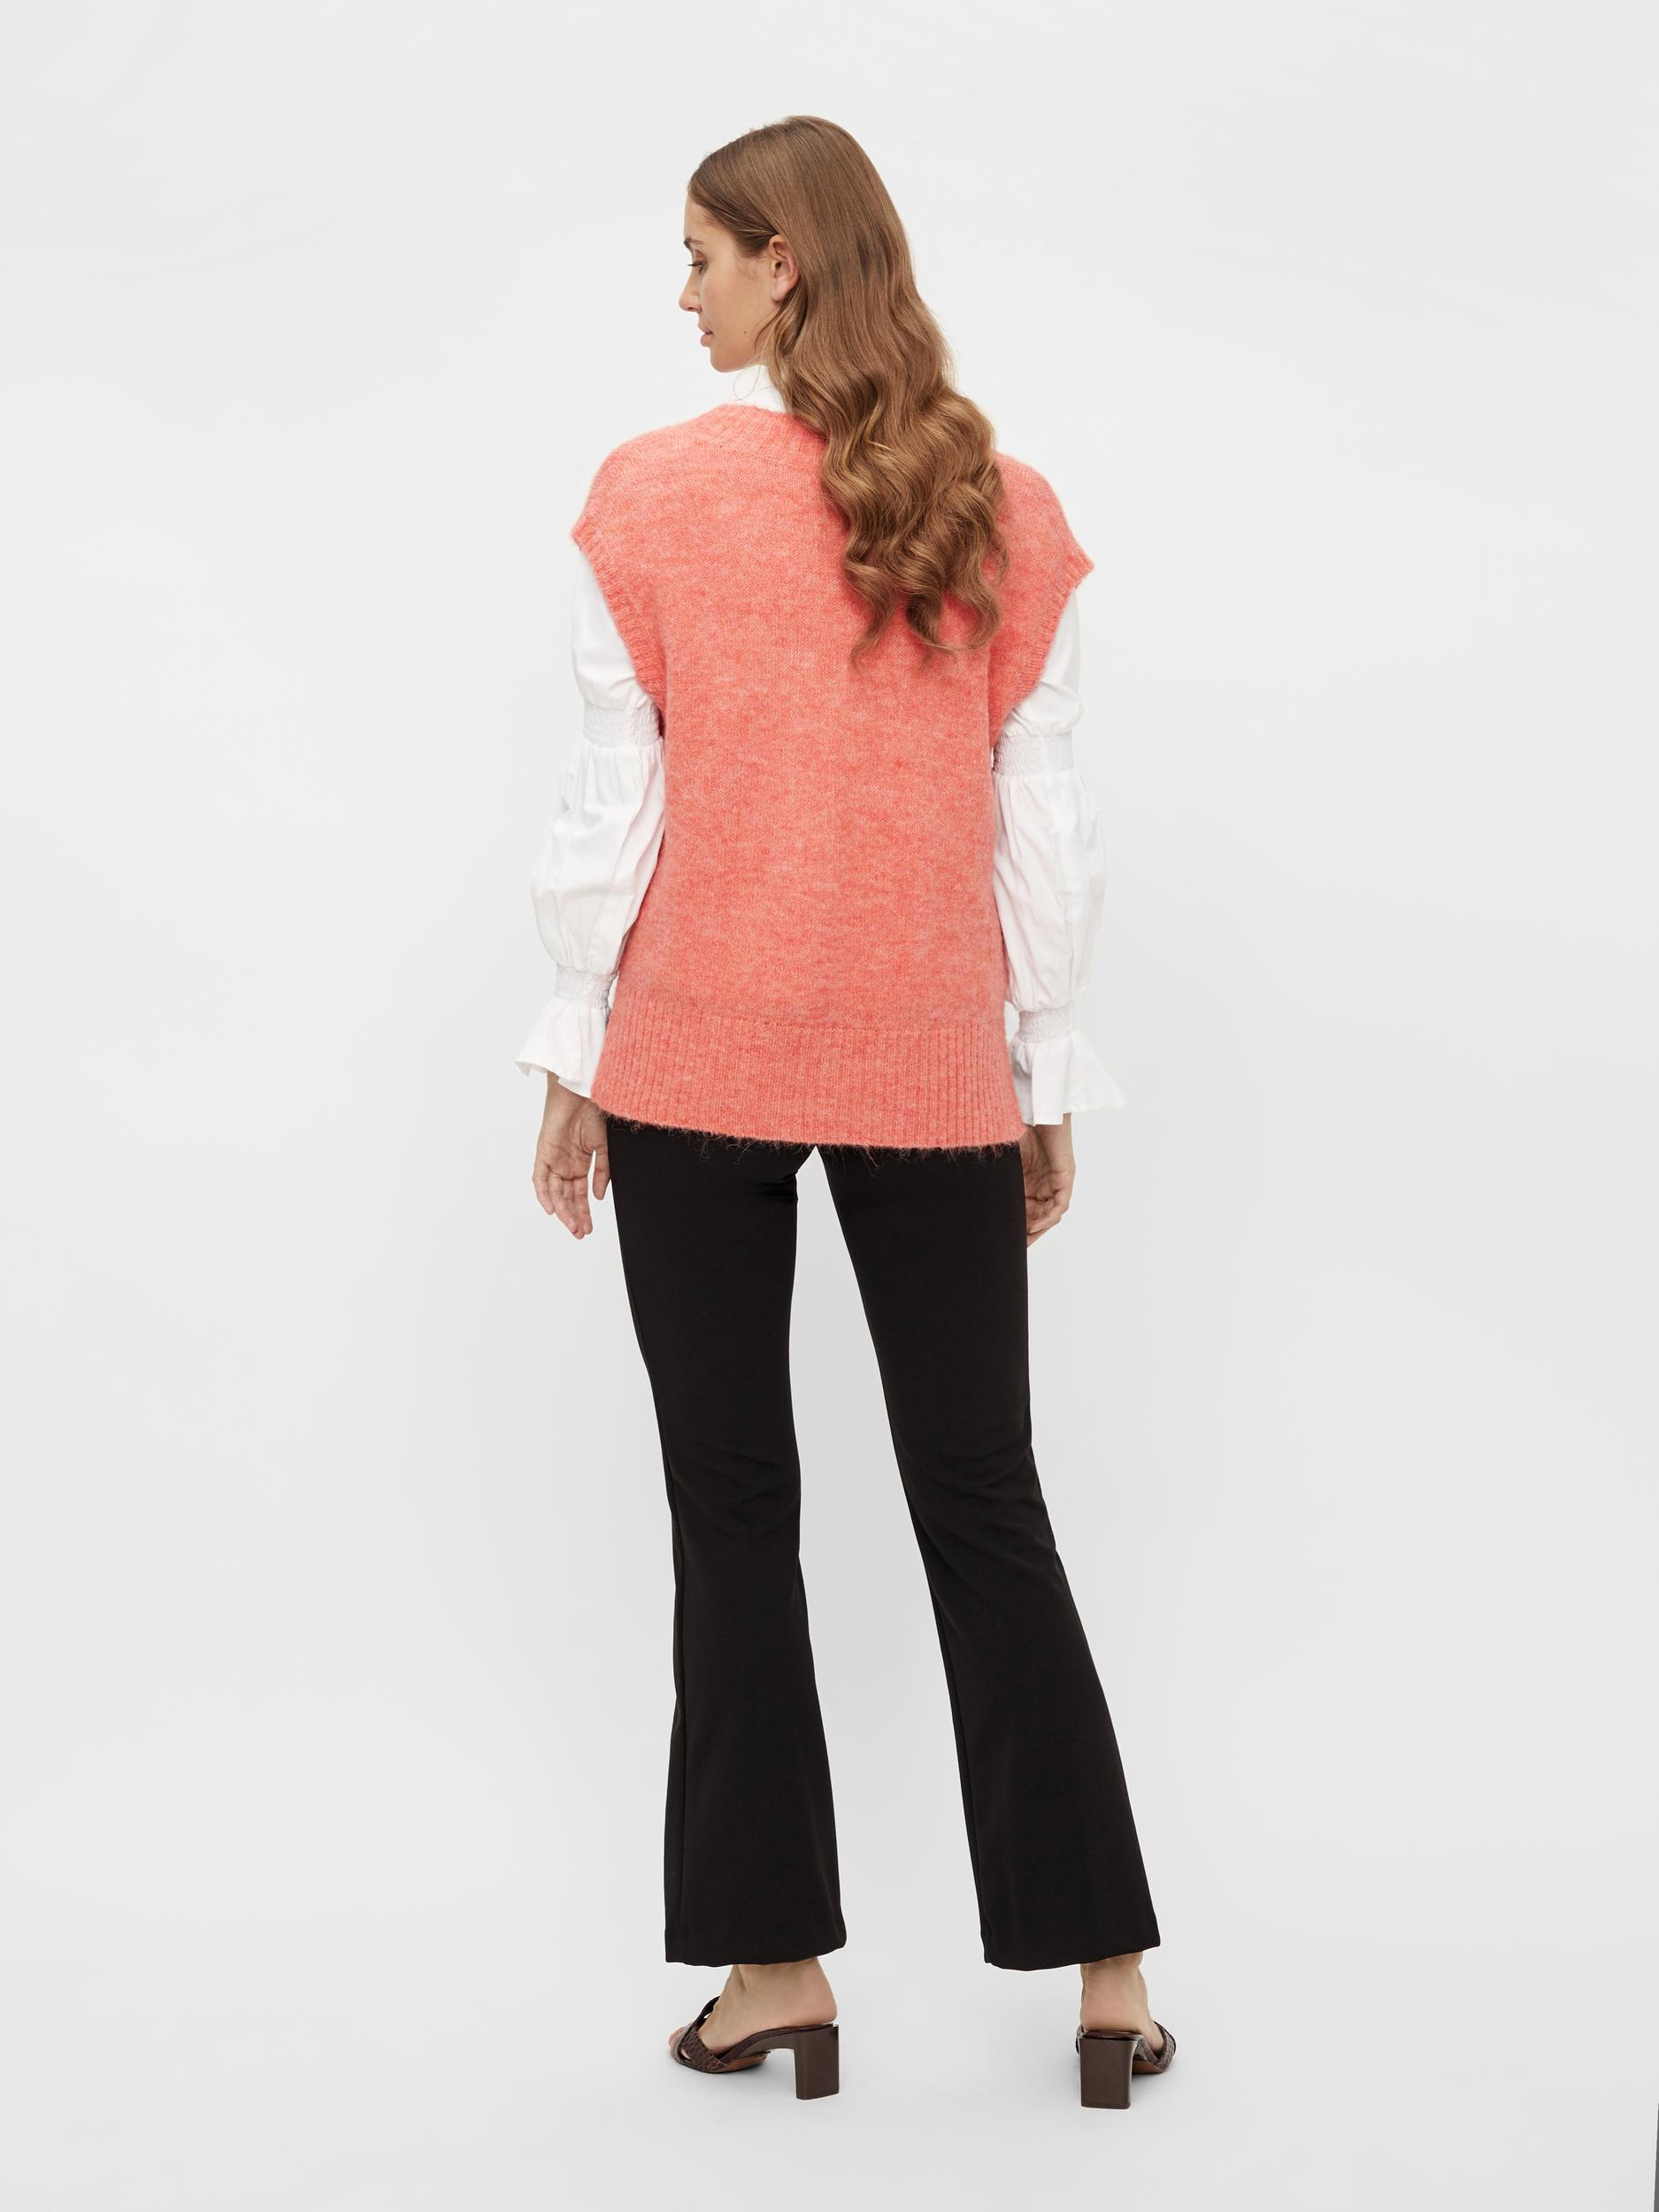 Y.A.S Apple strikvest, crabapple, small